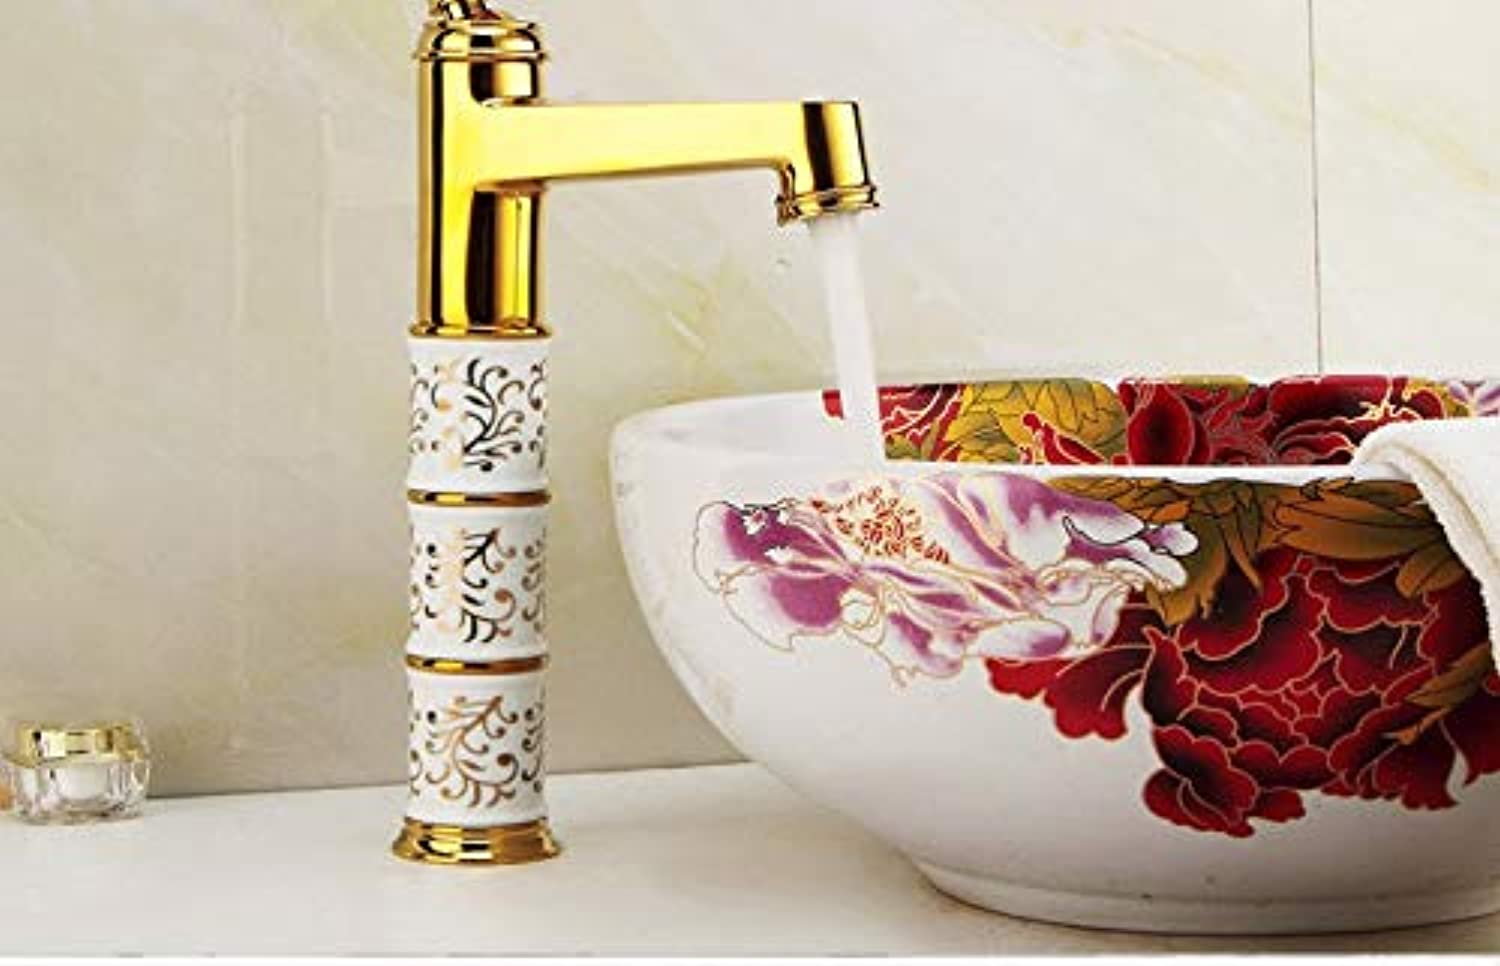 Ceramic Washbasin Mixer Hot and Cold Faucet gold-Plated Basin Faucet Hot and Cold